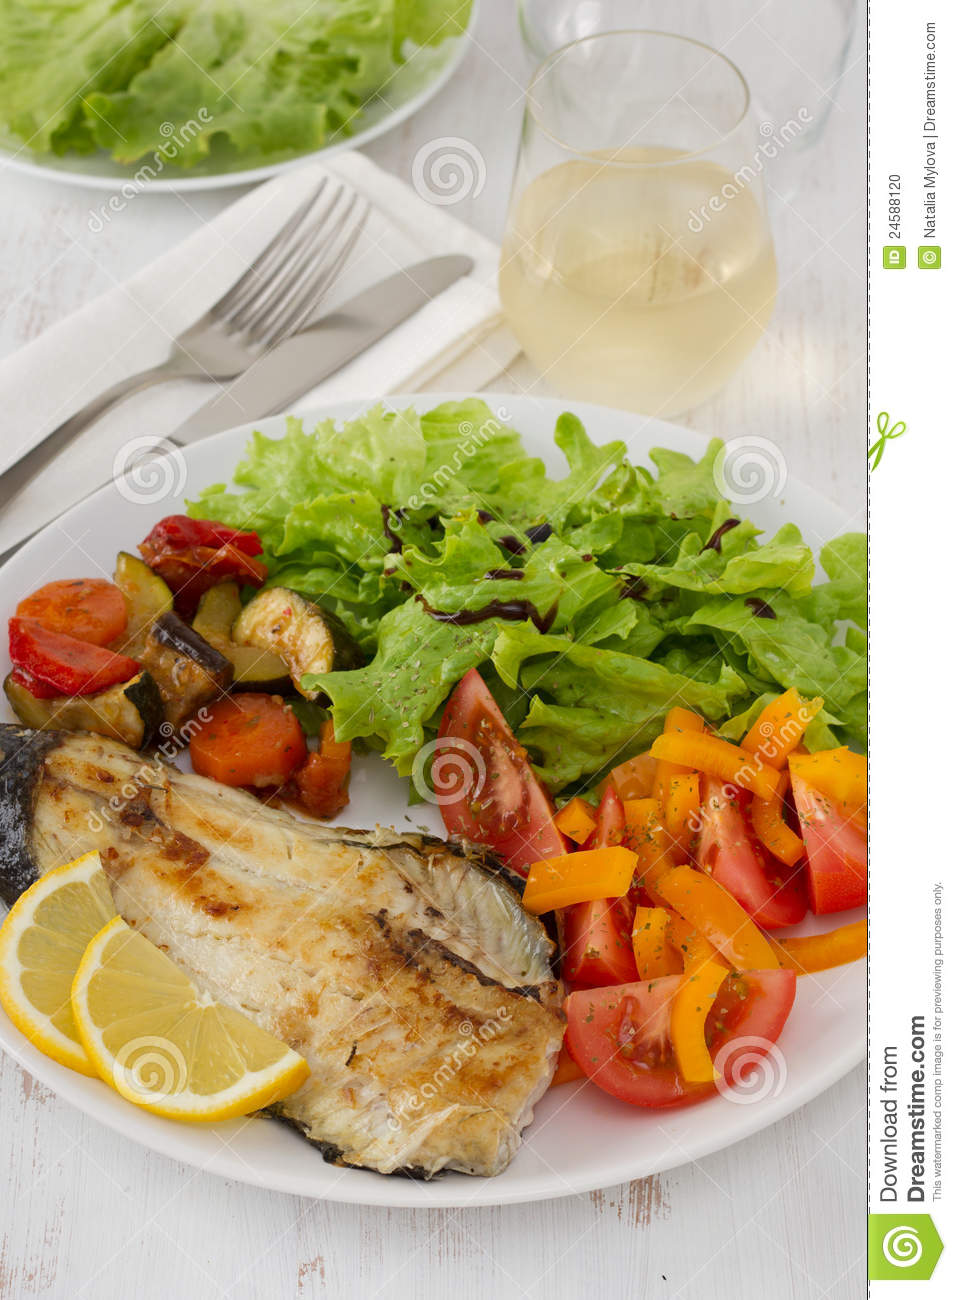 Fried fish with vegetables stock photo image 24588120 for What vegetables go with fish